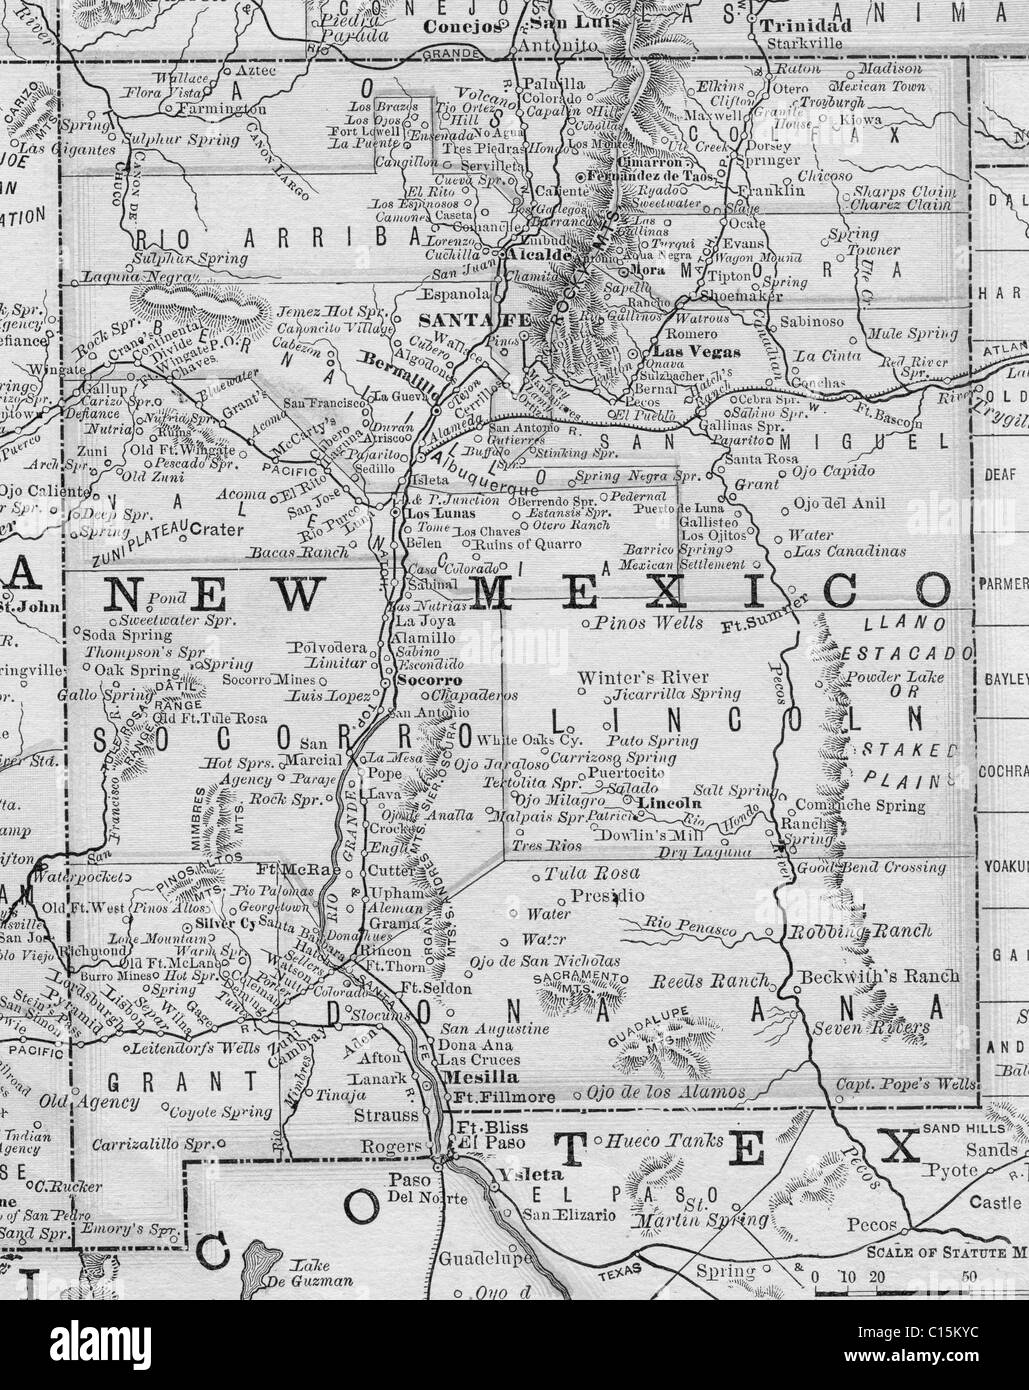 Old map of New Mexico from original geography textbook, 1884 Stock ...